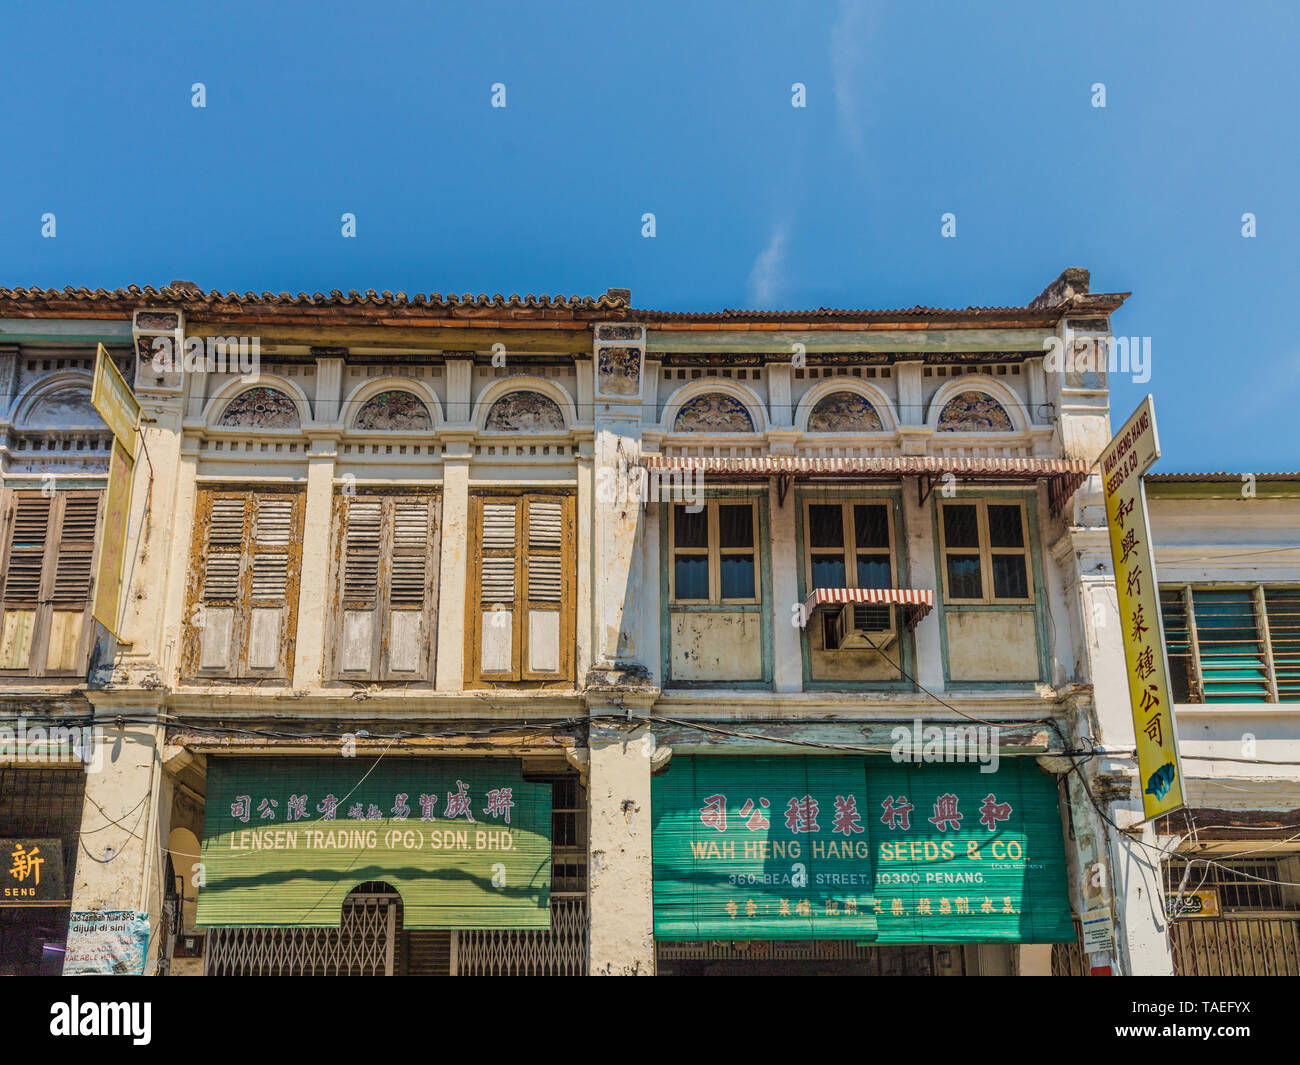 Chinese shophouse architecture in George Town Malaysia - Stock Image